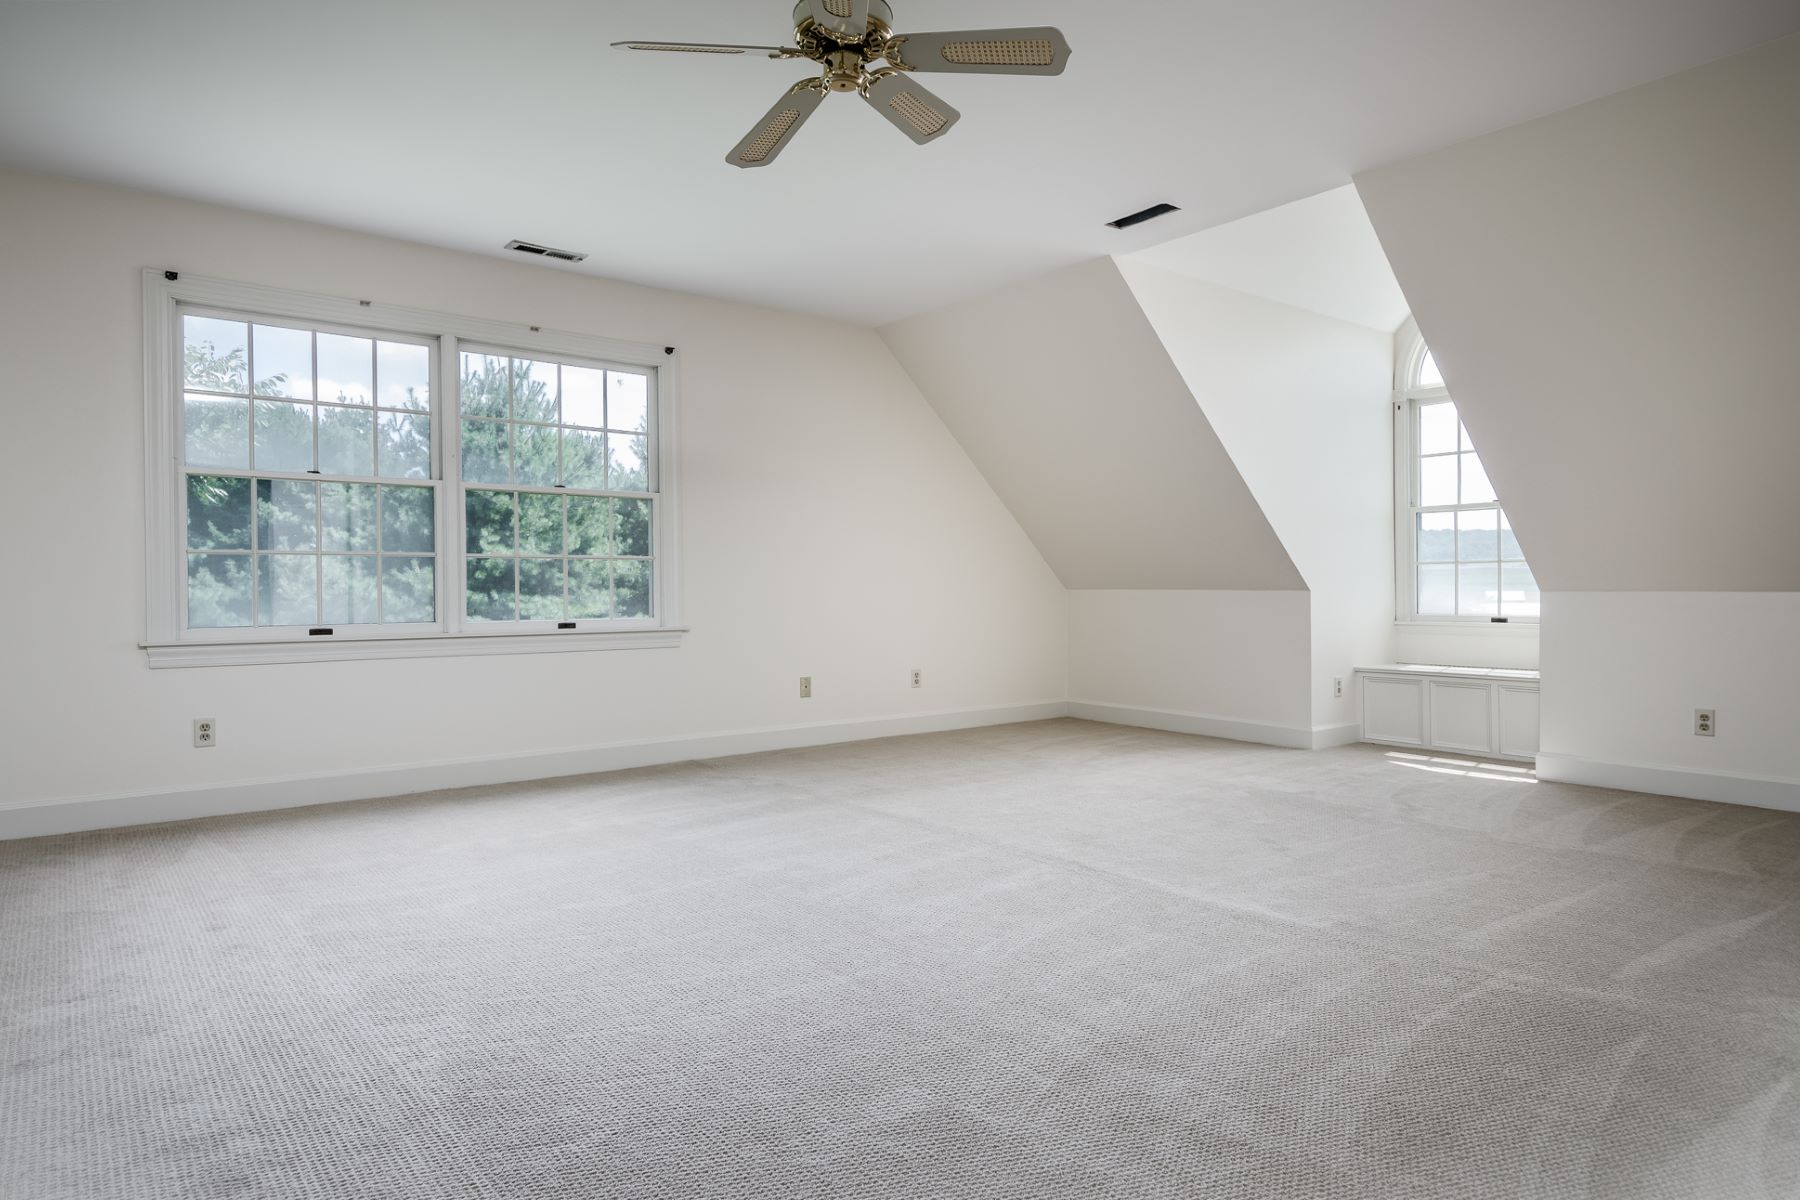 Additional photo for property listing at Your Very Own Expanse Of The Countryside - East Amwell Township 327 Wertsville Road Ringoes, New Jersey 08551 United States